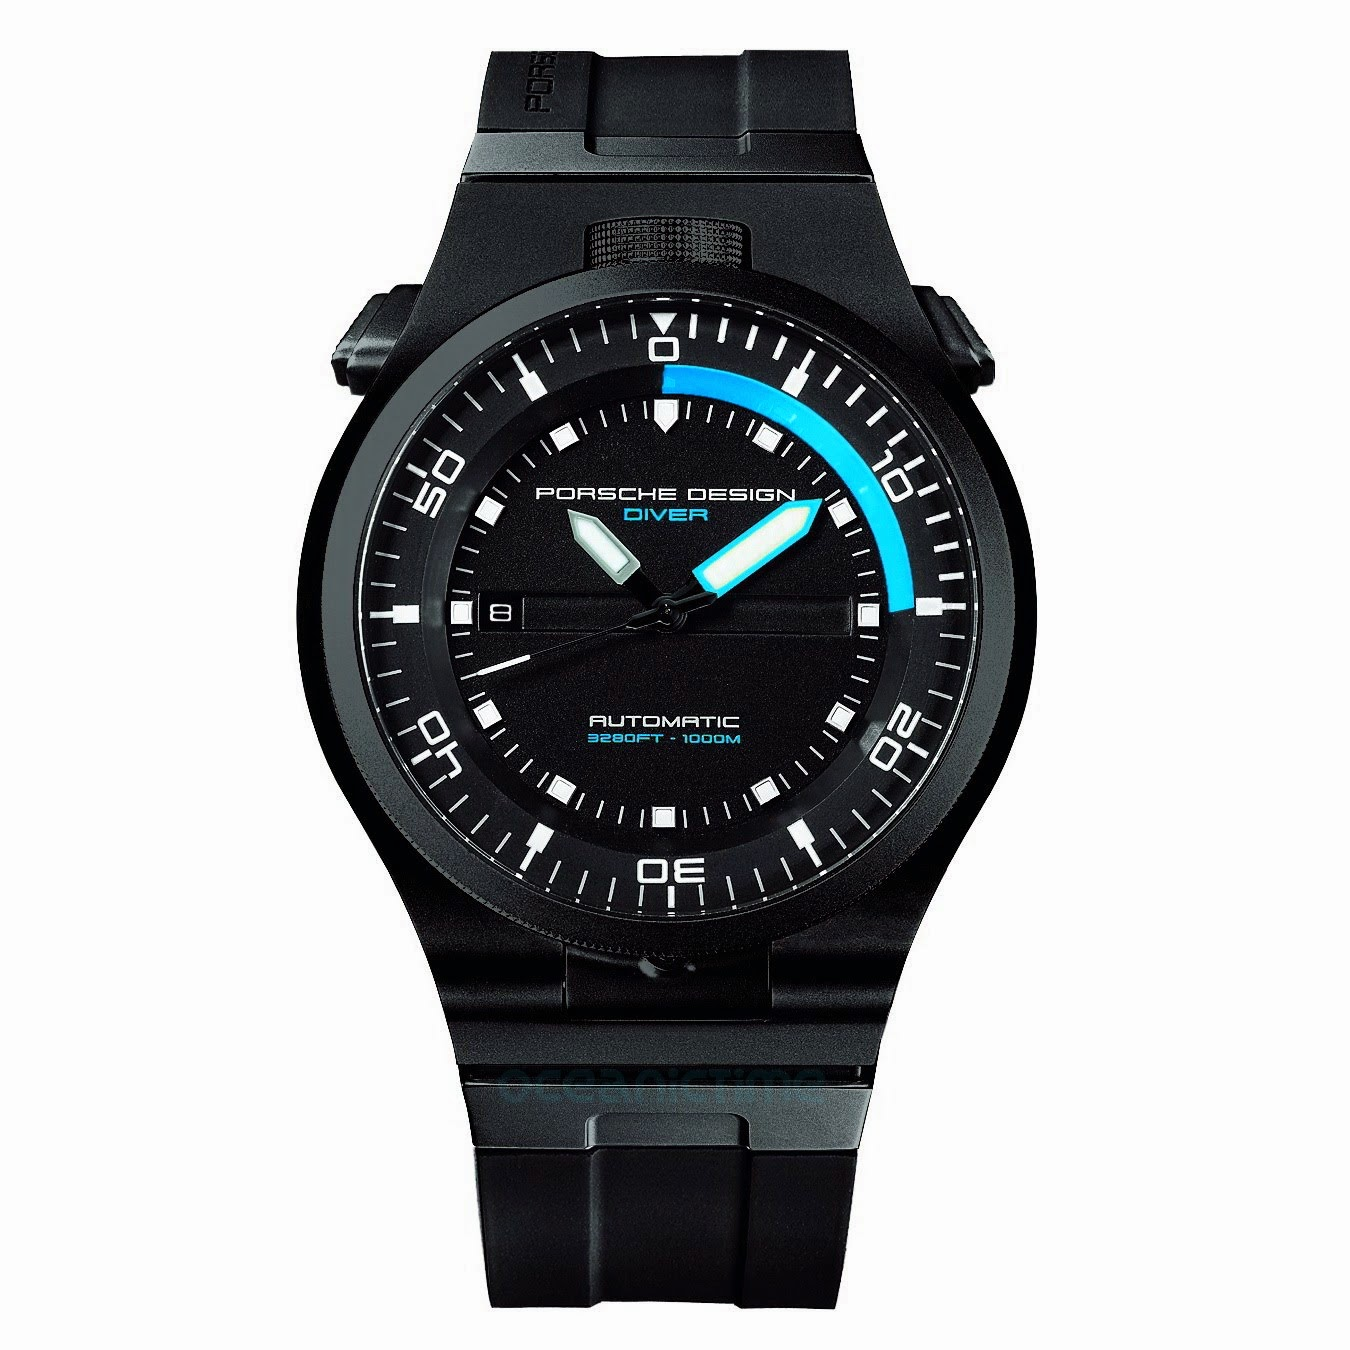 Porsche Design Küchenwaage Swiss Design Watches: The P'6780 Diver Watch From Porsche